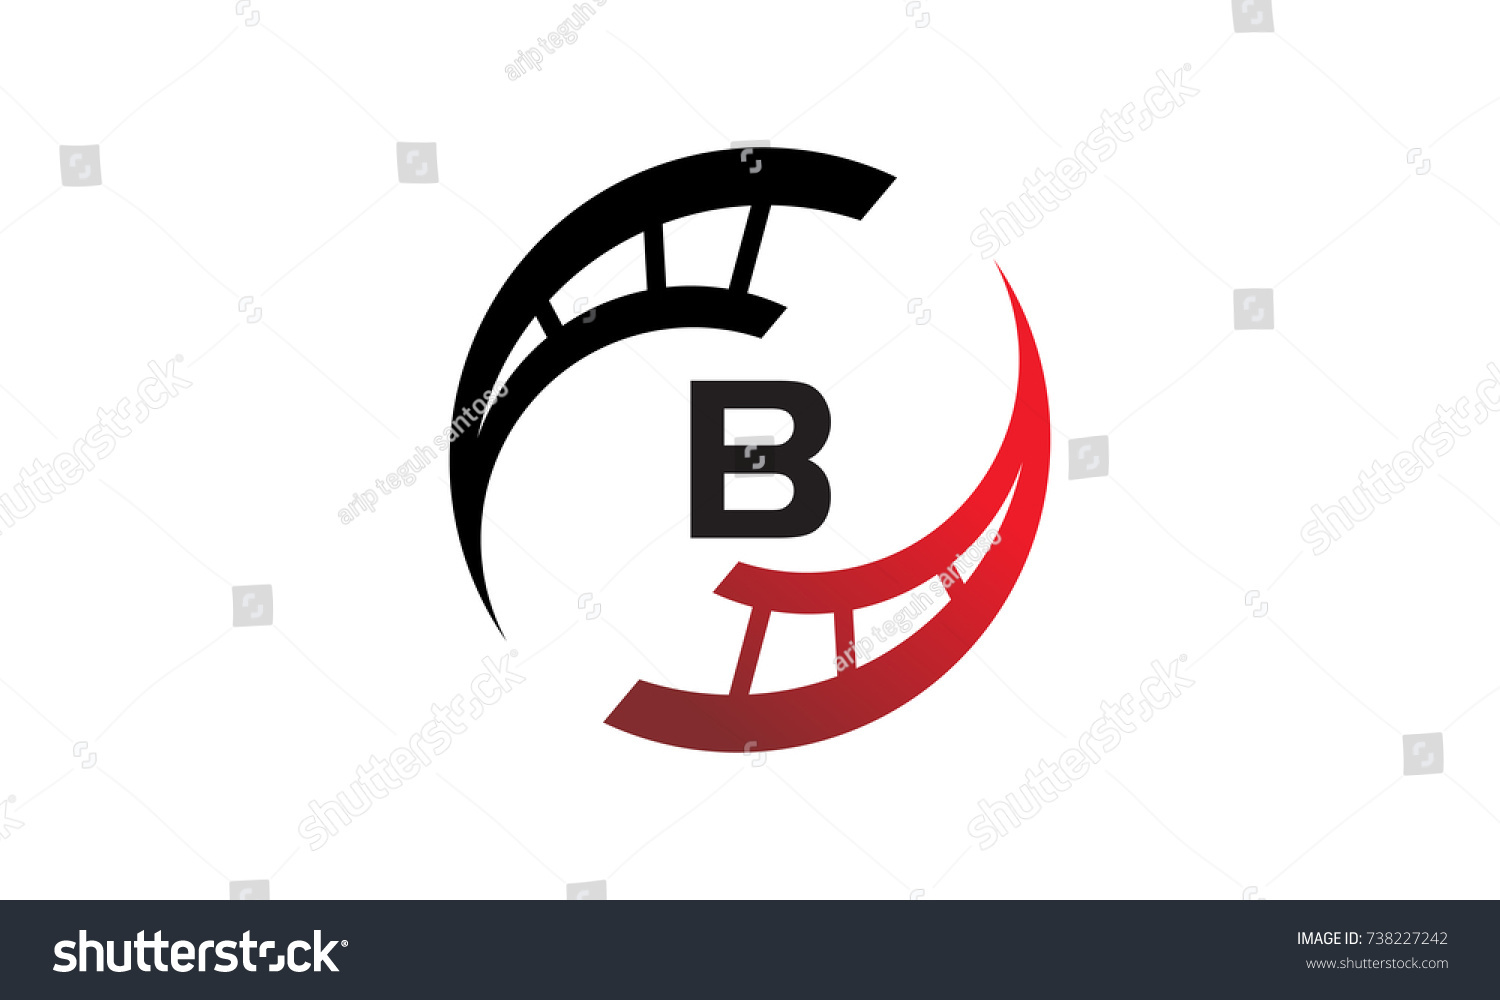 B Stock Solutions film solutions initial b stock vector (royalty free) 738227242